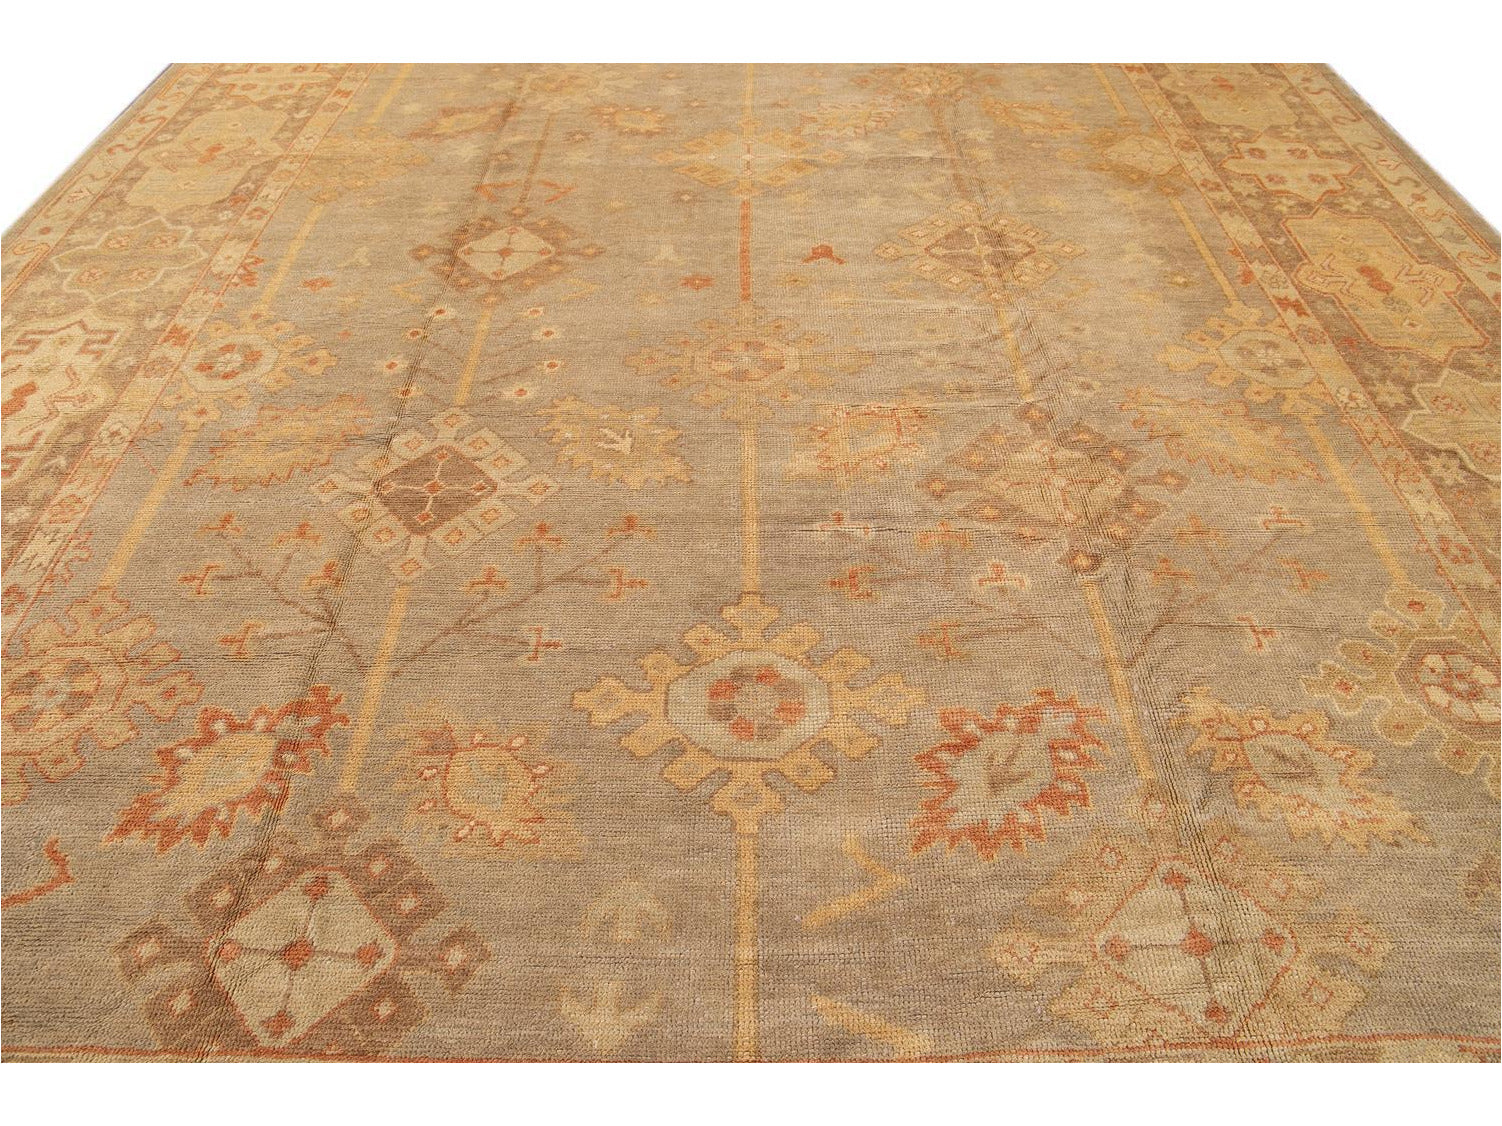 21st Century Antique Turkish Oushak Long Wool Rug 12 X 21